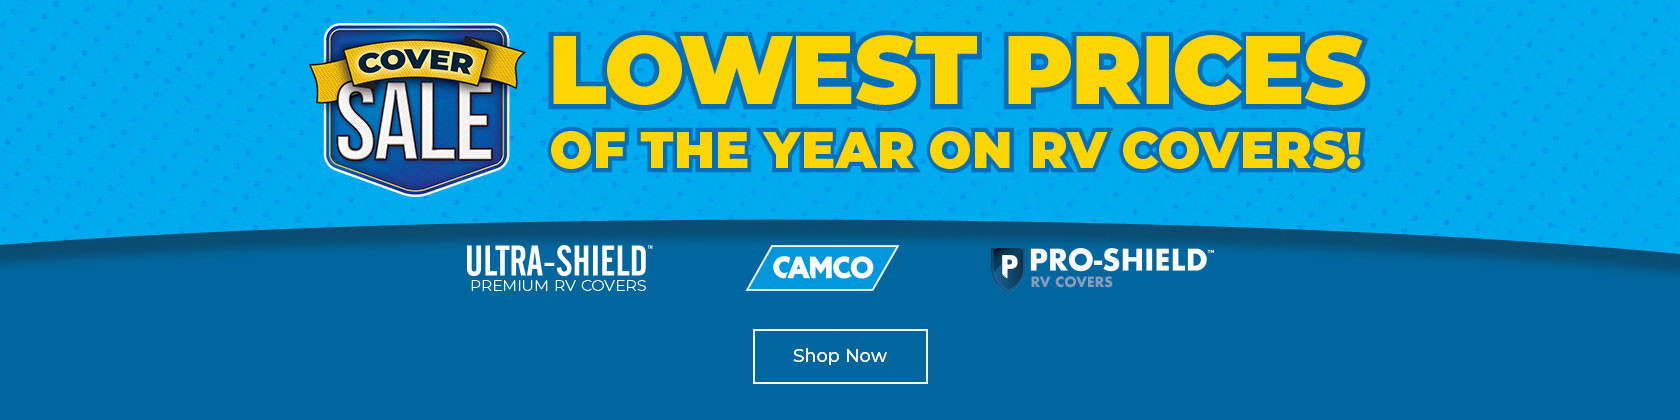 RV Cover Sale - Lowest Prices of the Year